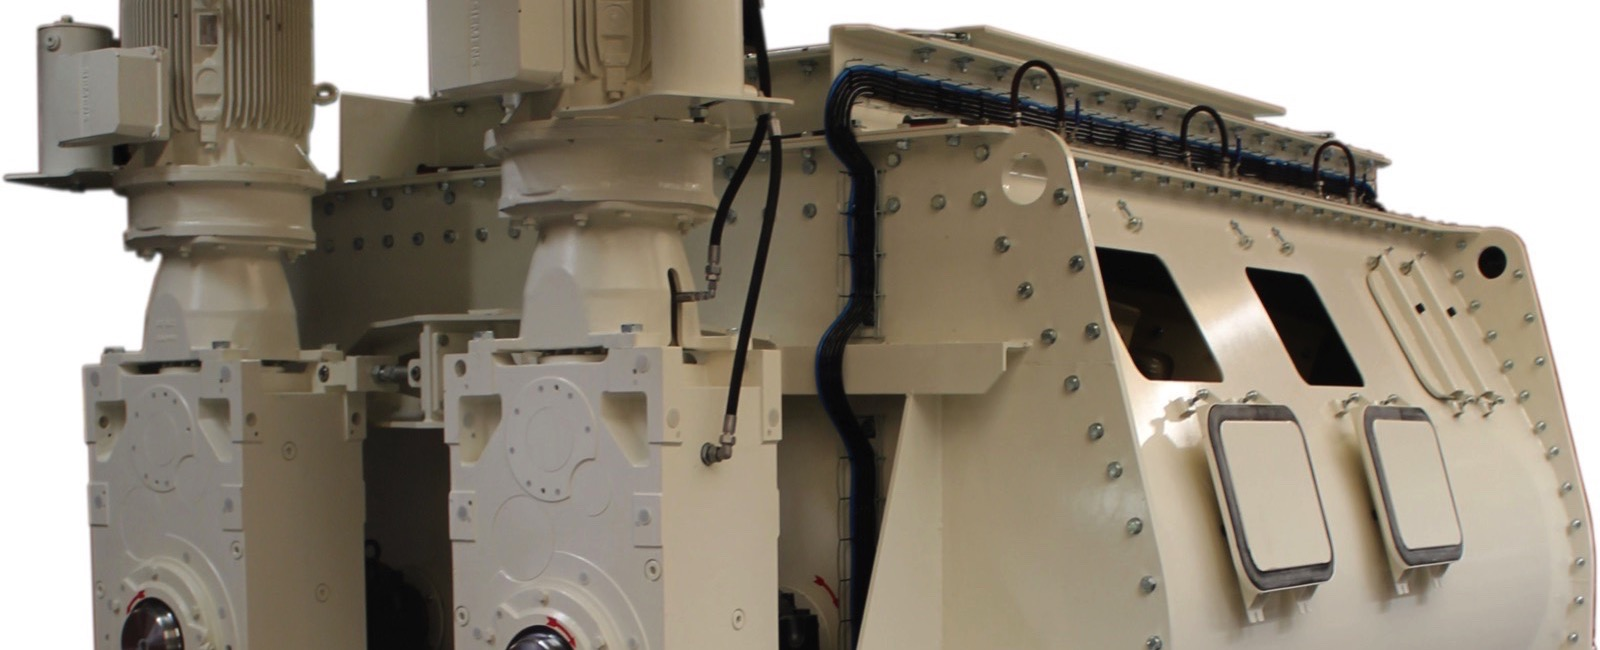 Jansen & Heuning delivers Feed Mixer for 70.000 cows in Saudi Arabia